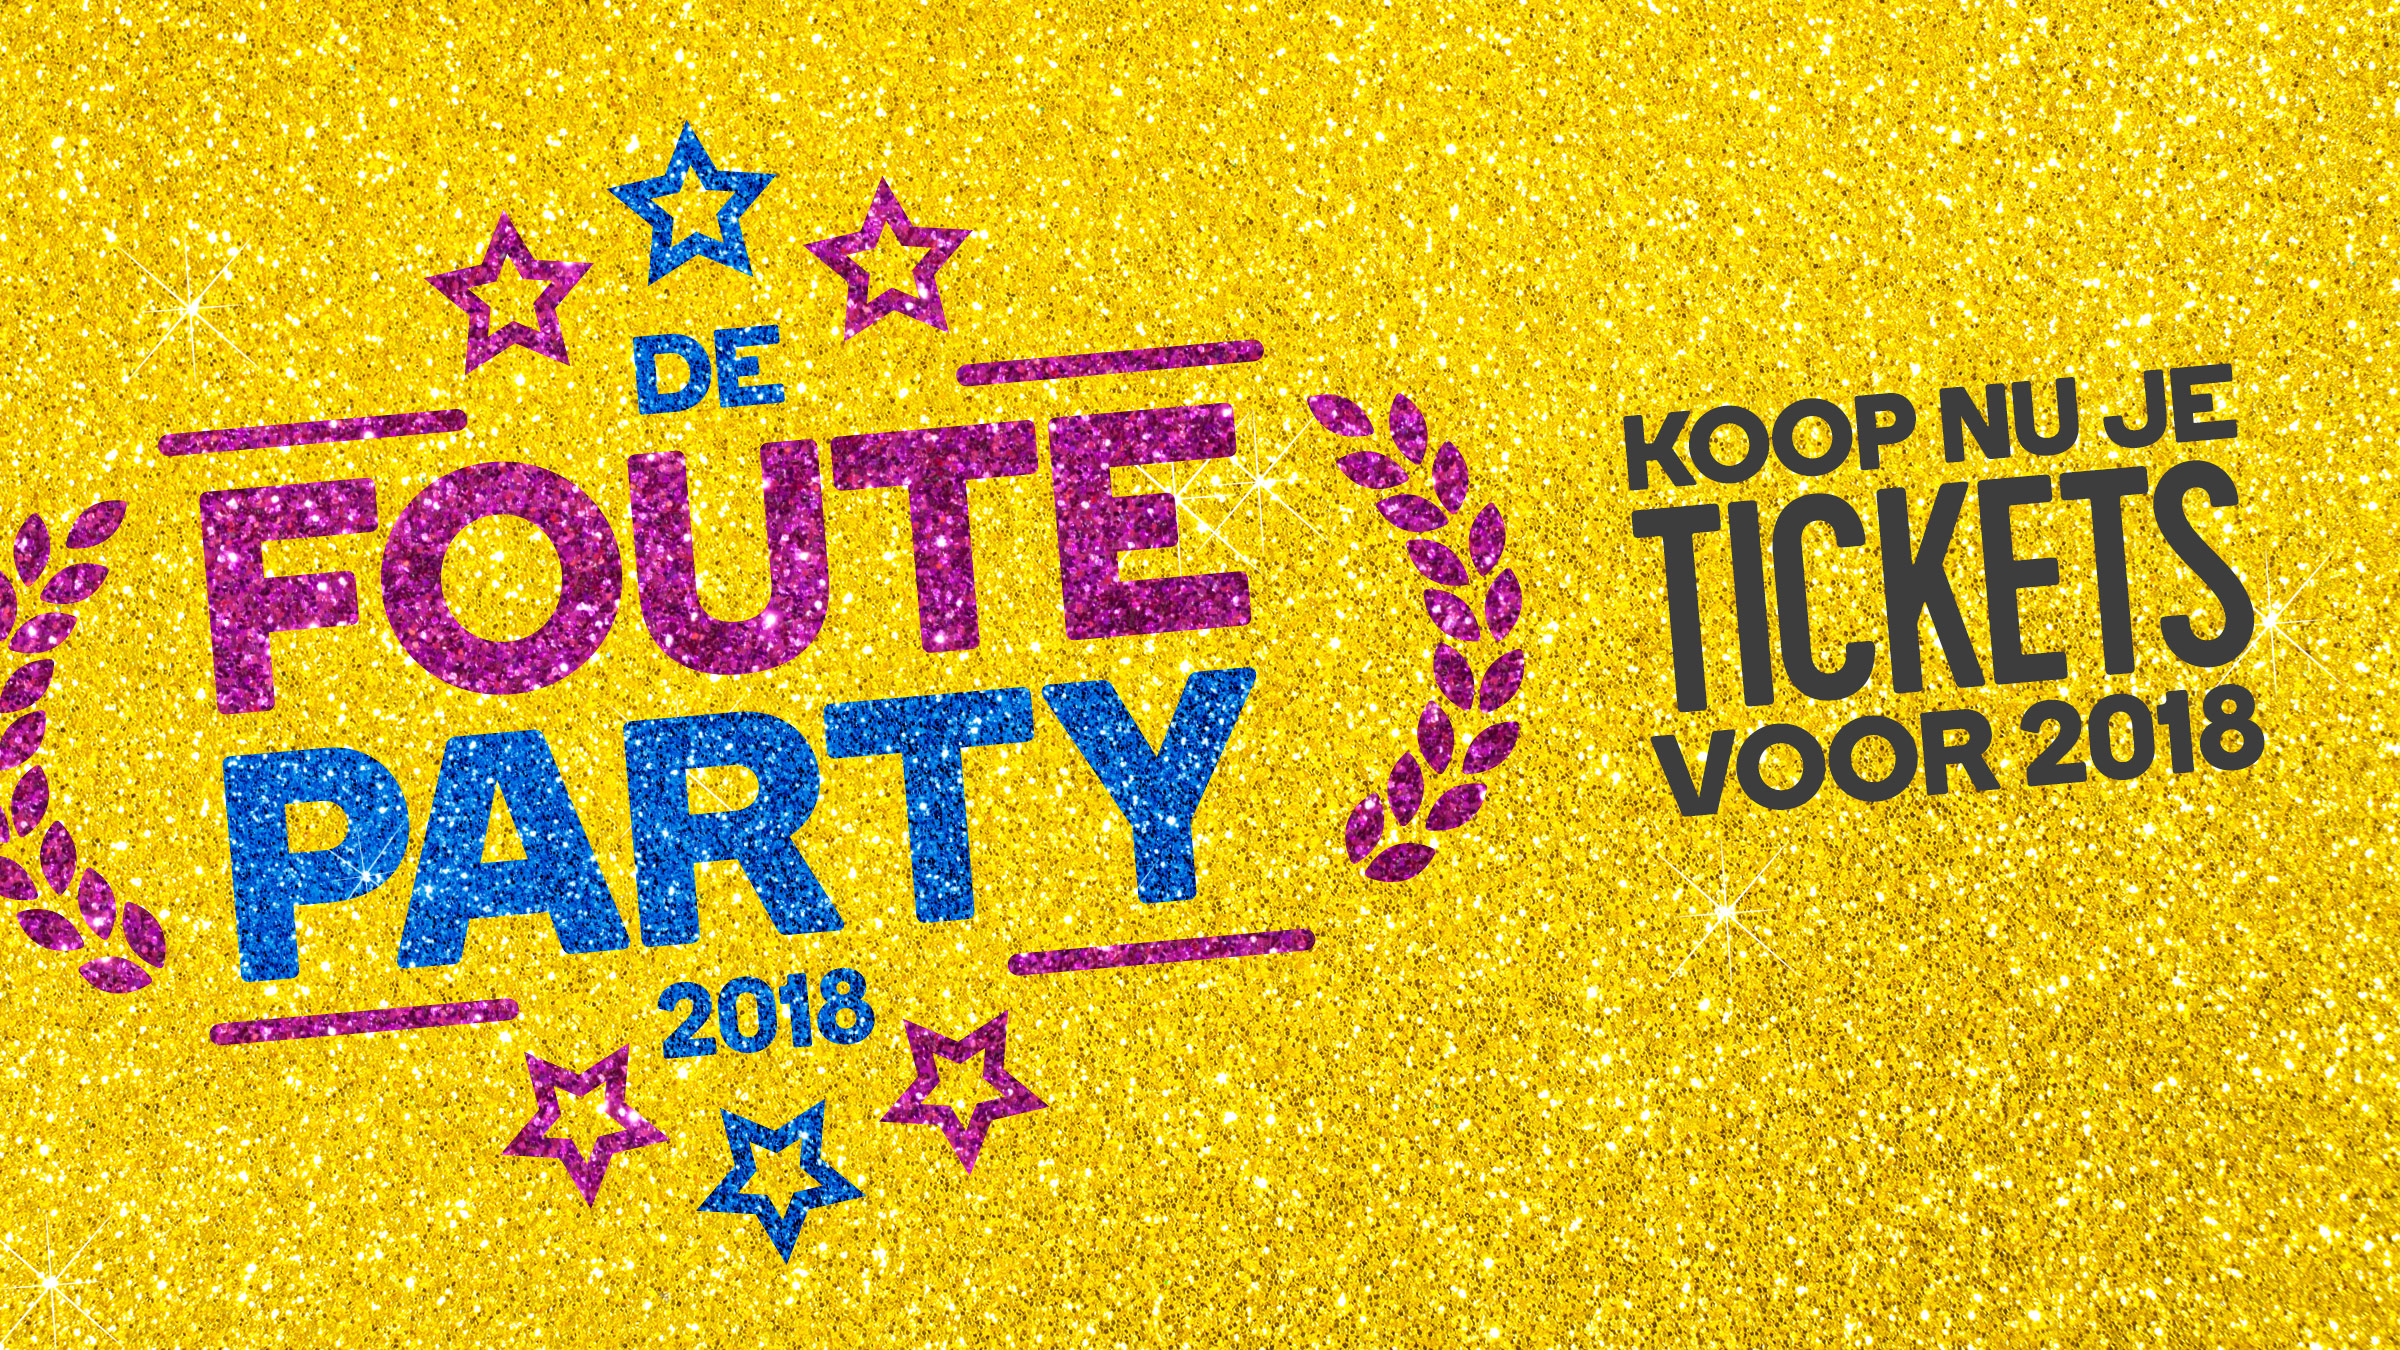 Qmusic teaser fouteparty2018 tickets